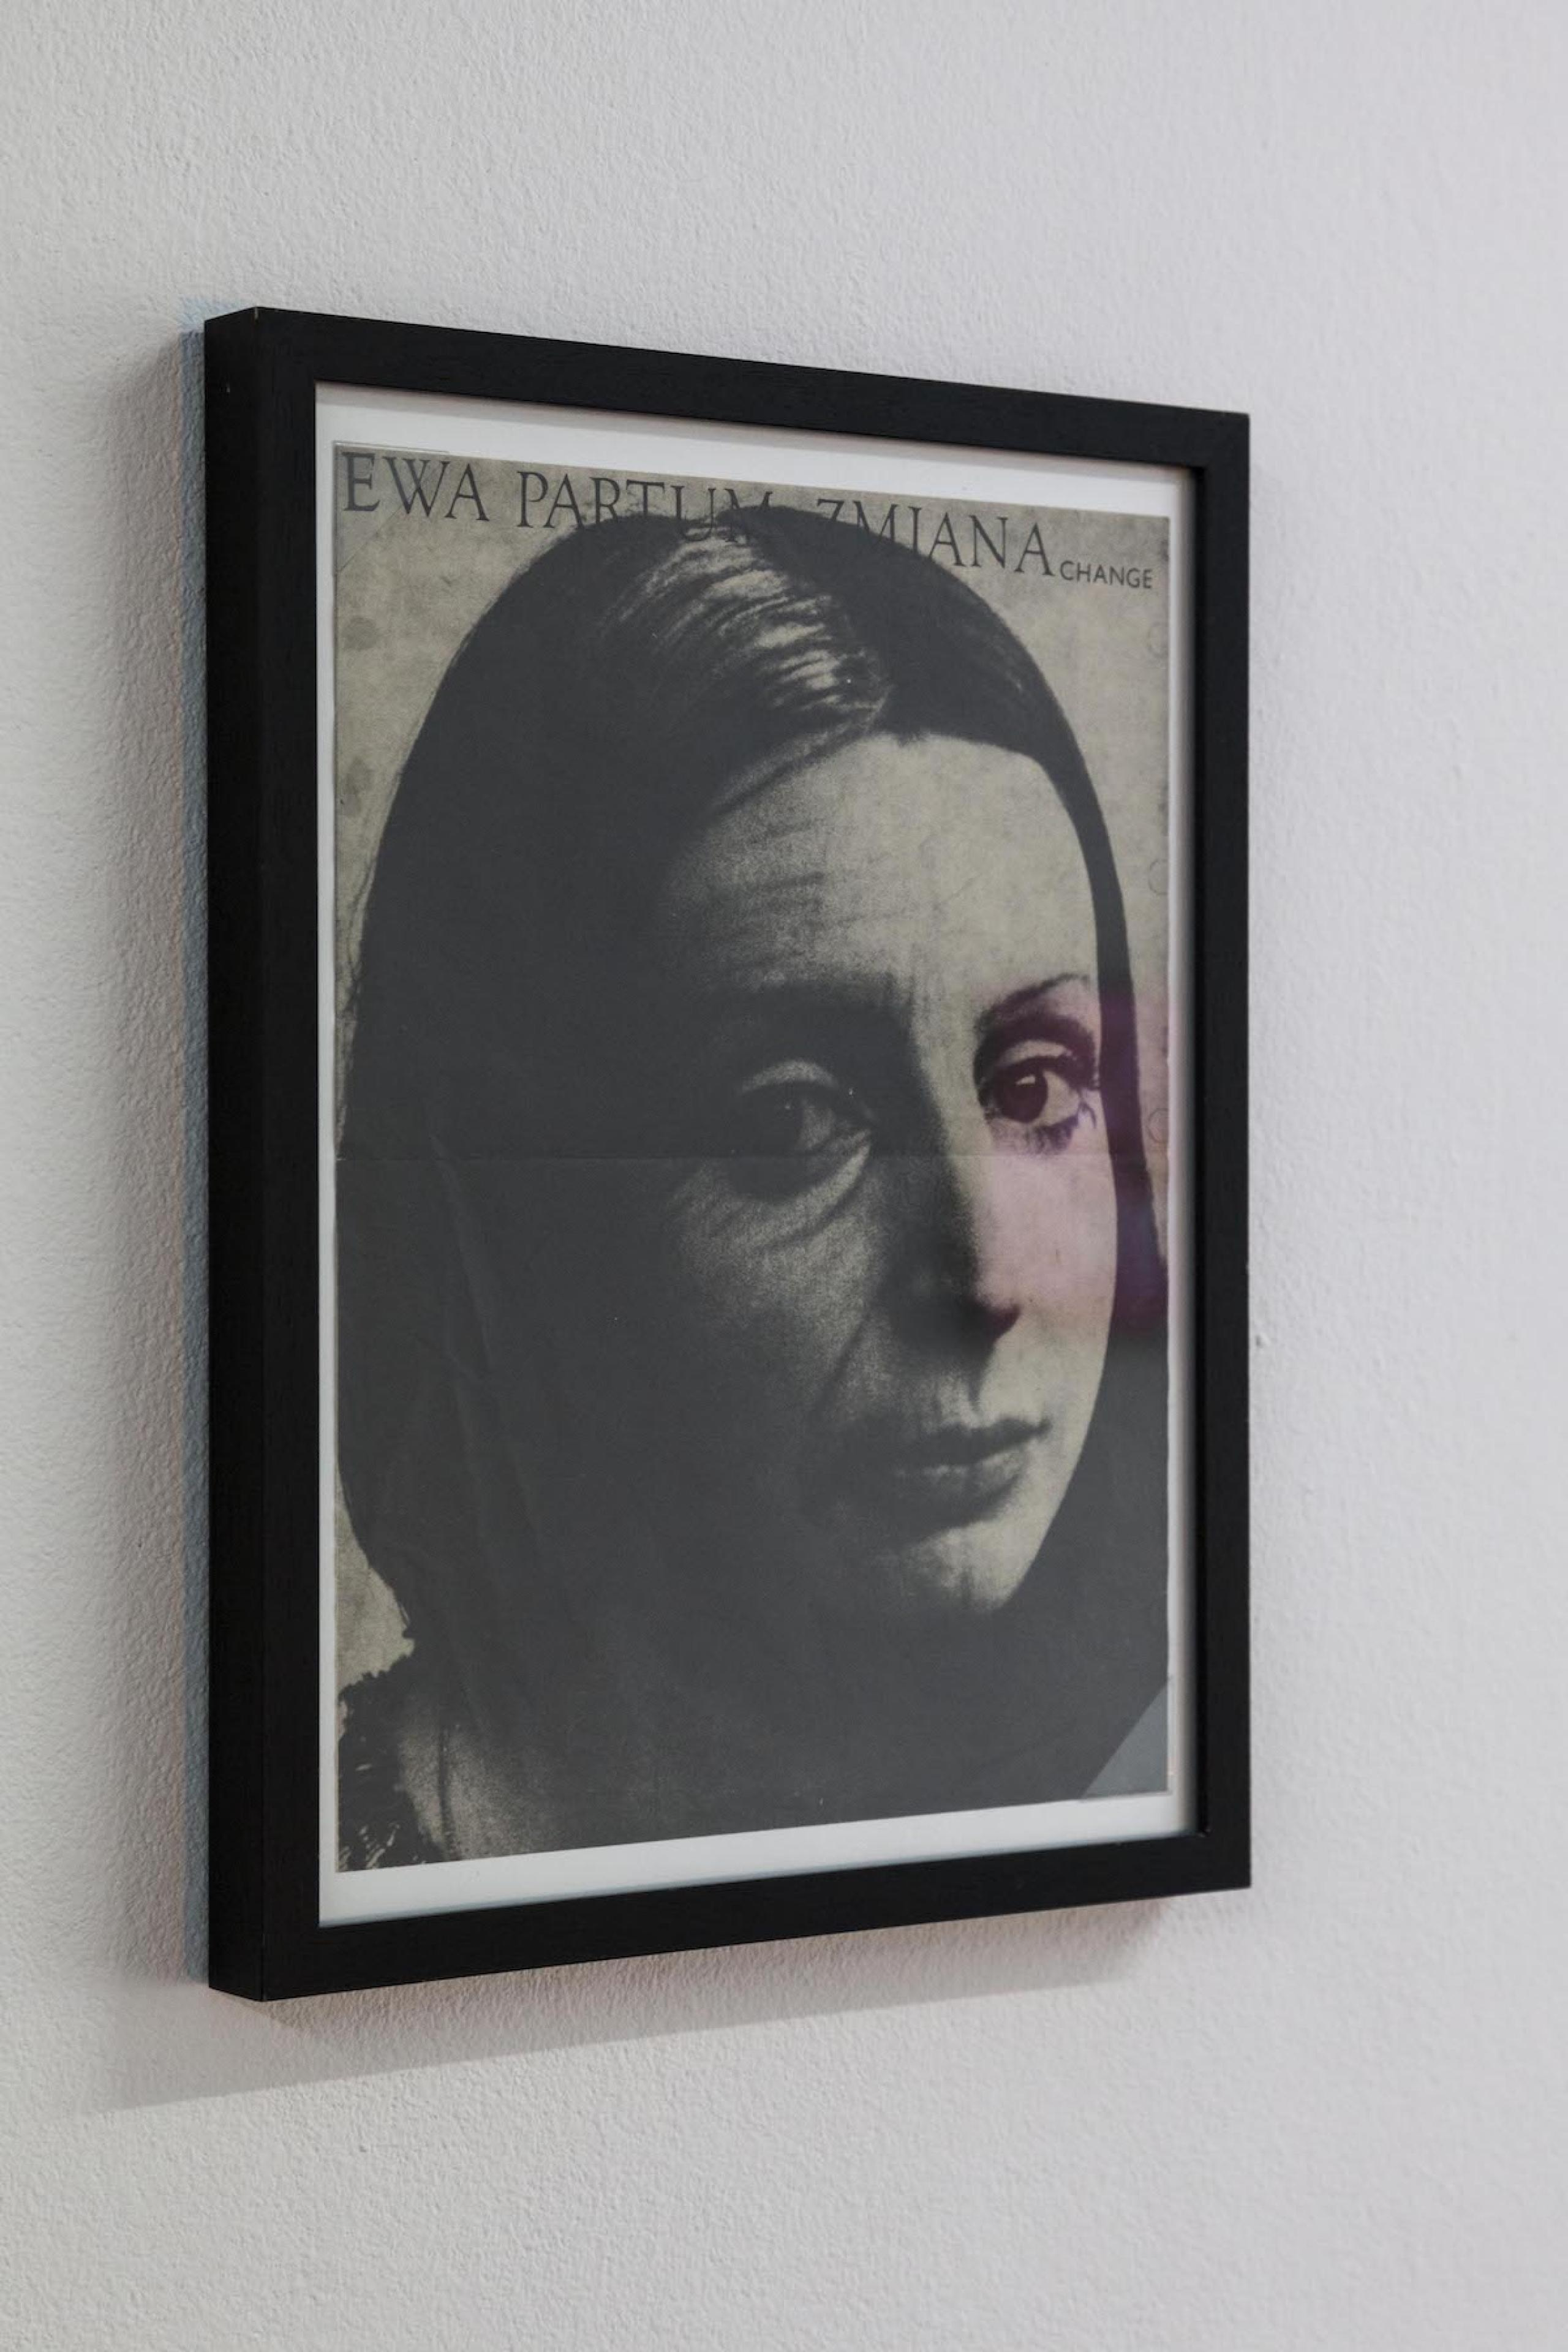 Ewa Partum Zmiana change, 1974, Offsetprint, signed on back, 36,5 x 27,5 cm, framed, Courtesy M + R Fricke, Berlin